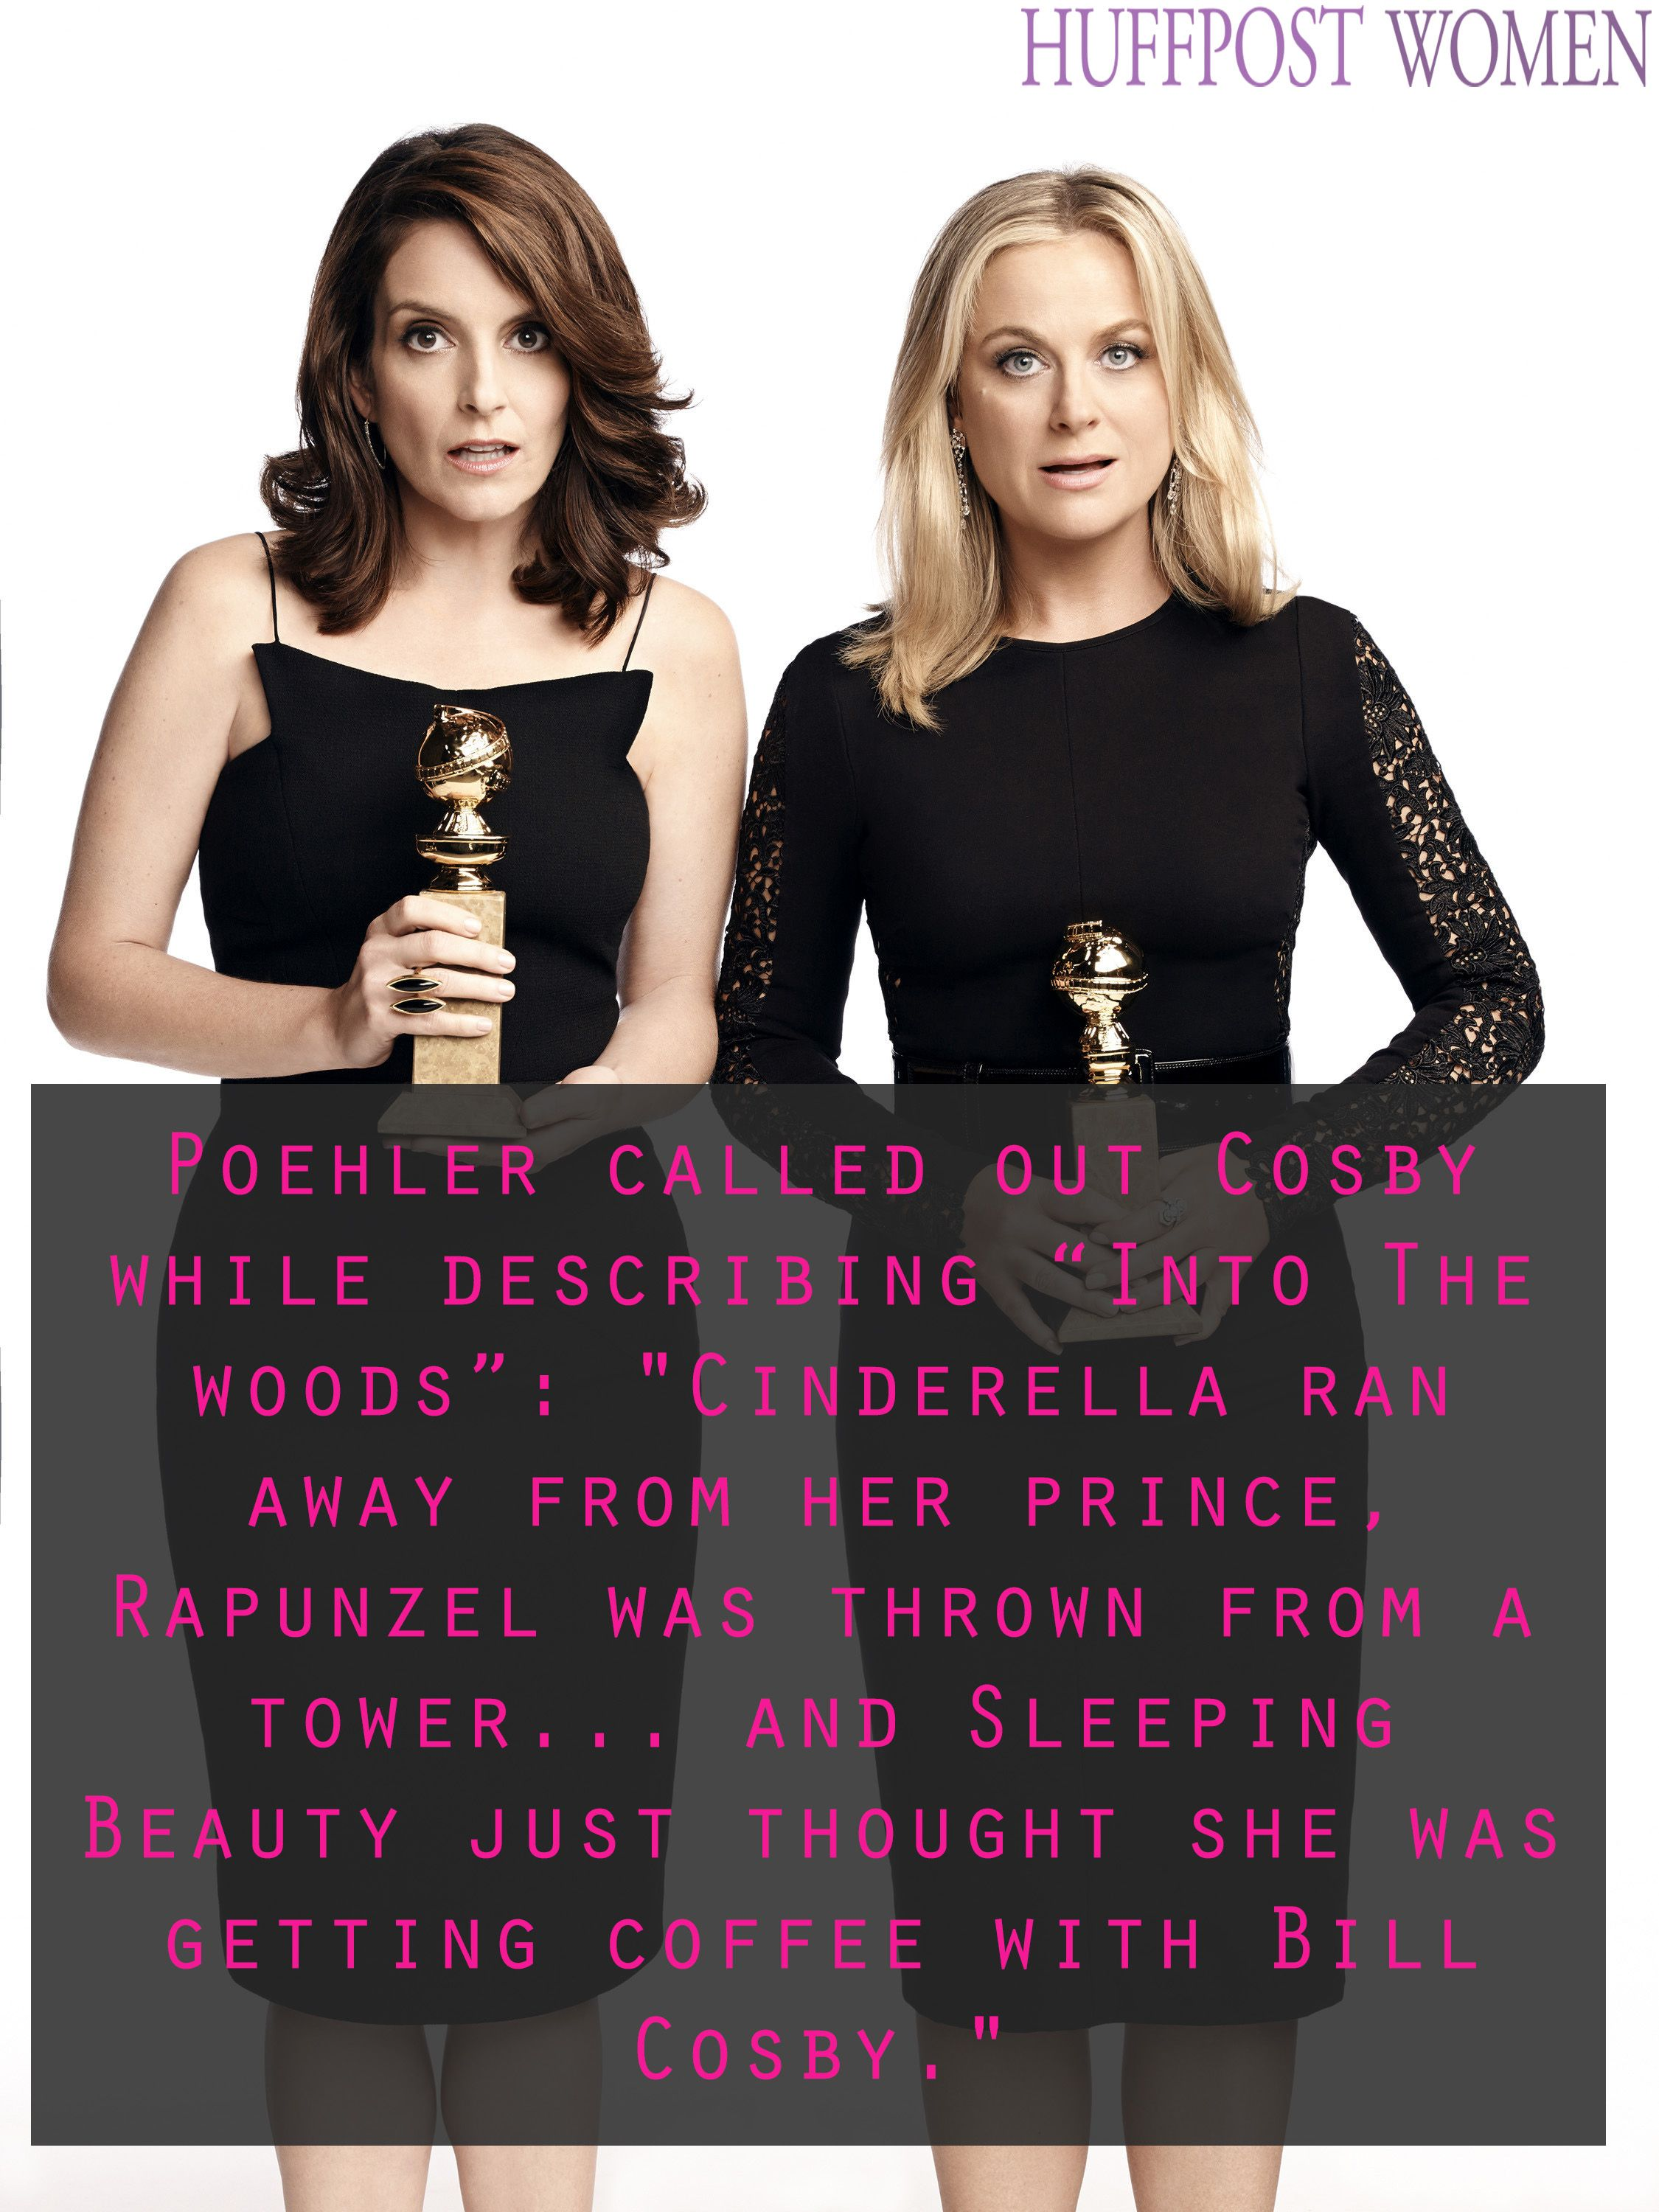 Amy and tina at the golden globes are nonstop lol worthy uc